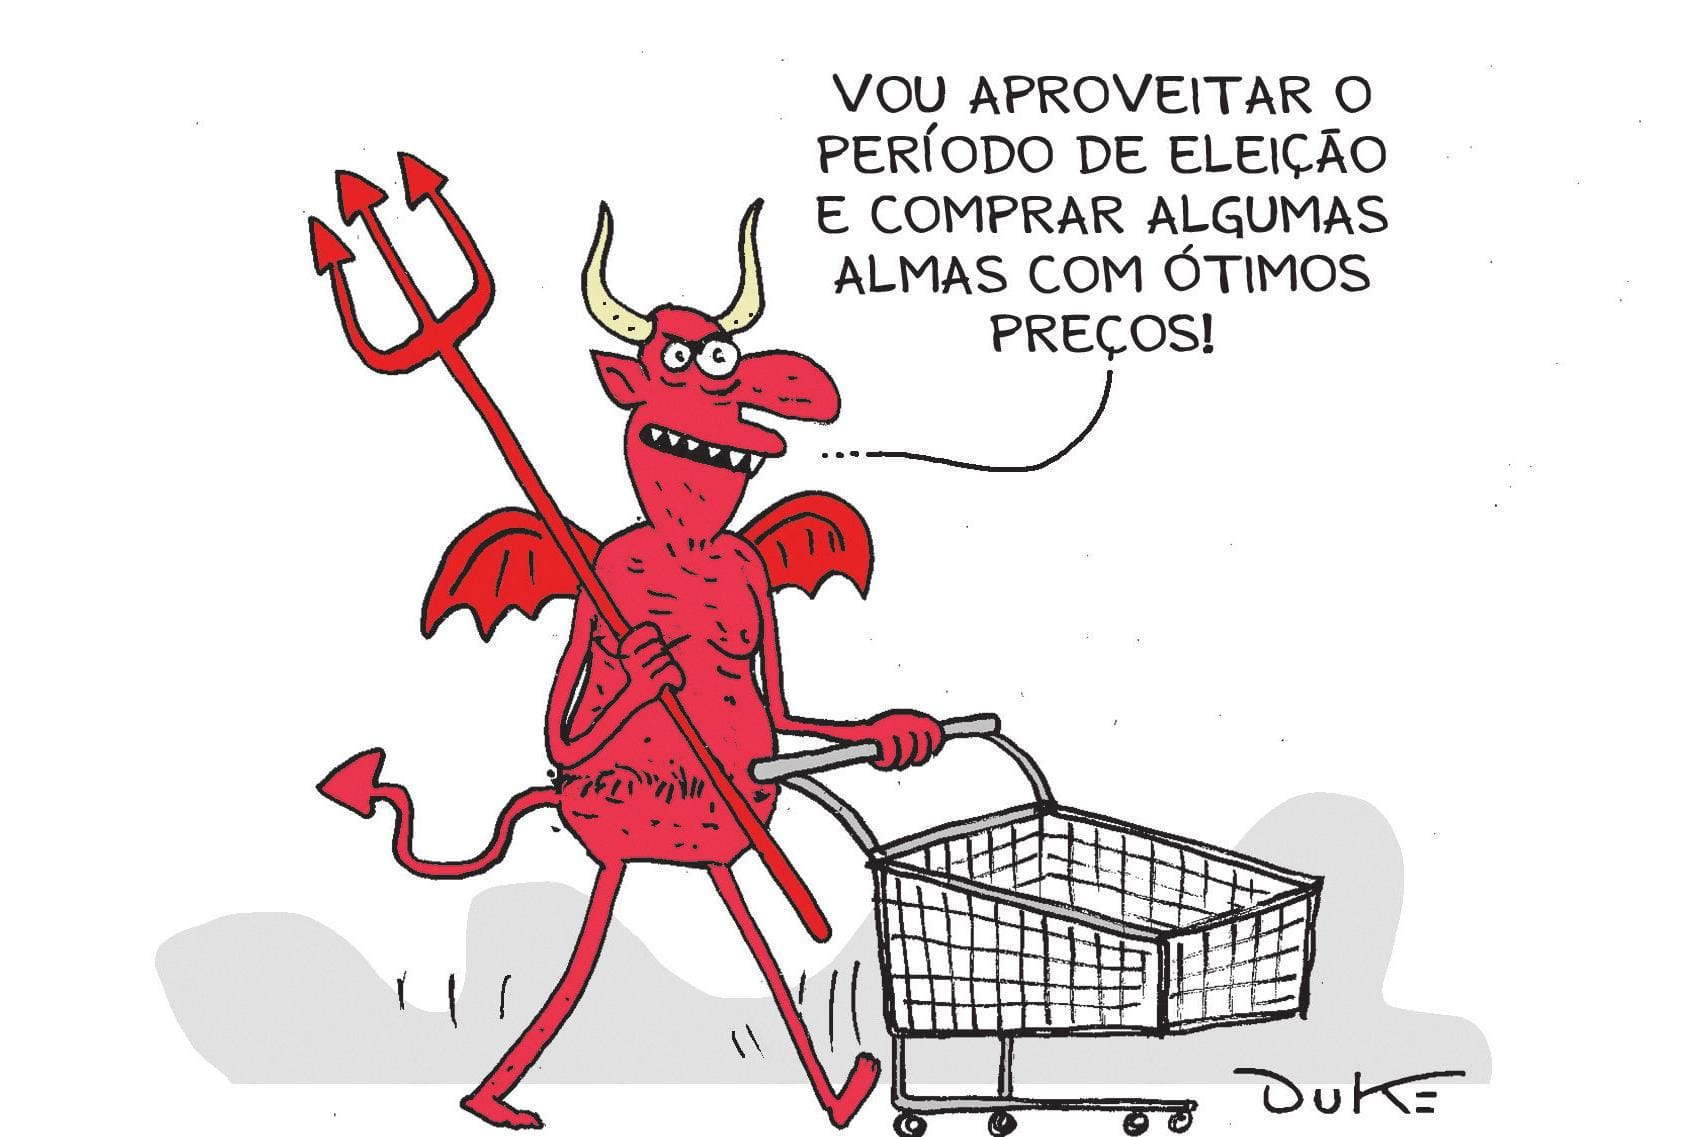 Charge O Tempo, domingo, 22/07/18